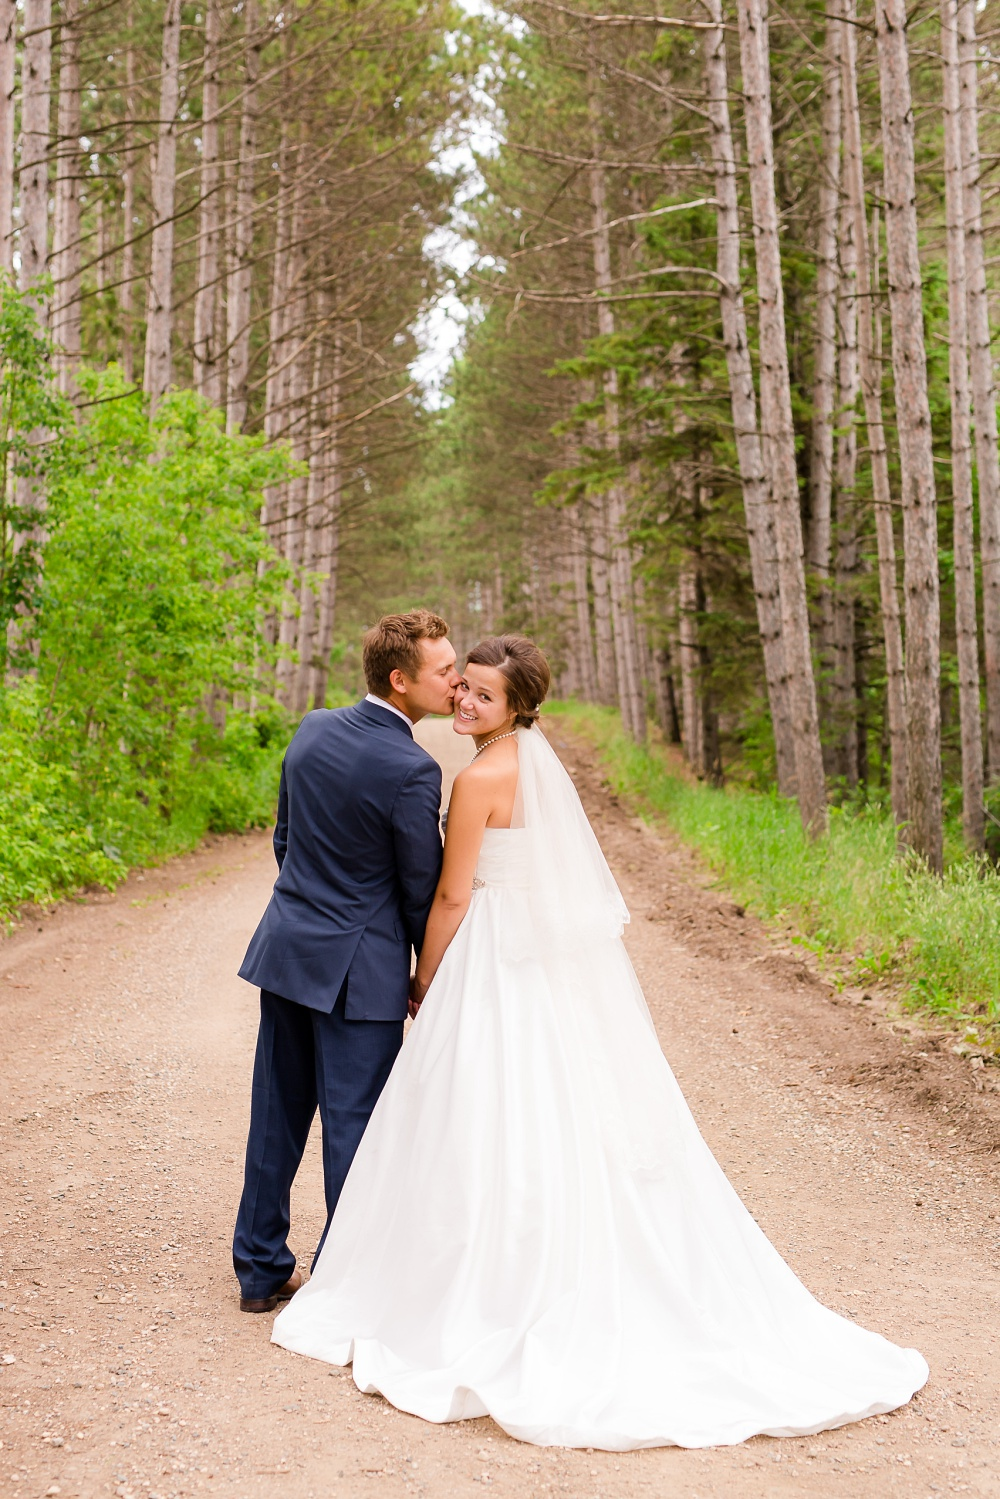 Wolf Lake, MN Country Styled Wedding, White Dress, Blue Suite | Photographed by Amber Langerud Photography | Groom Kissing Bride's Cheek